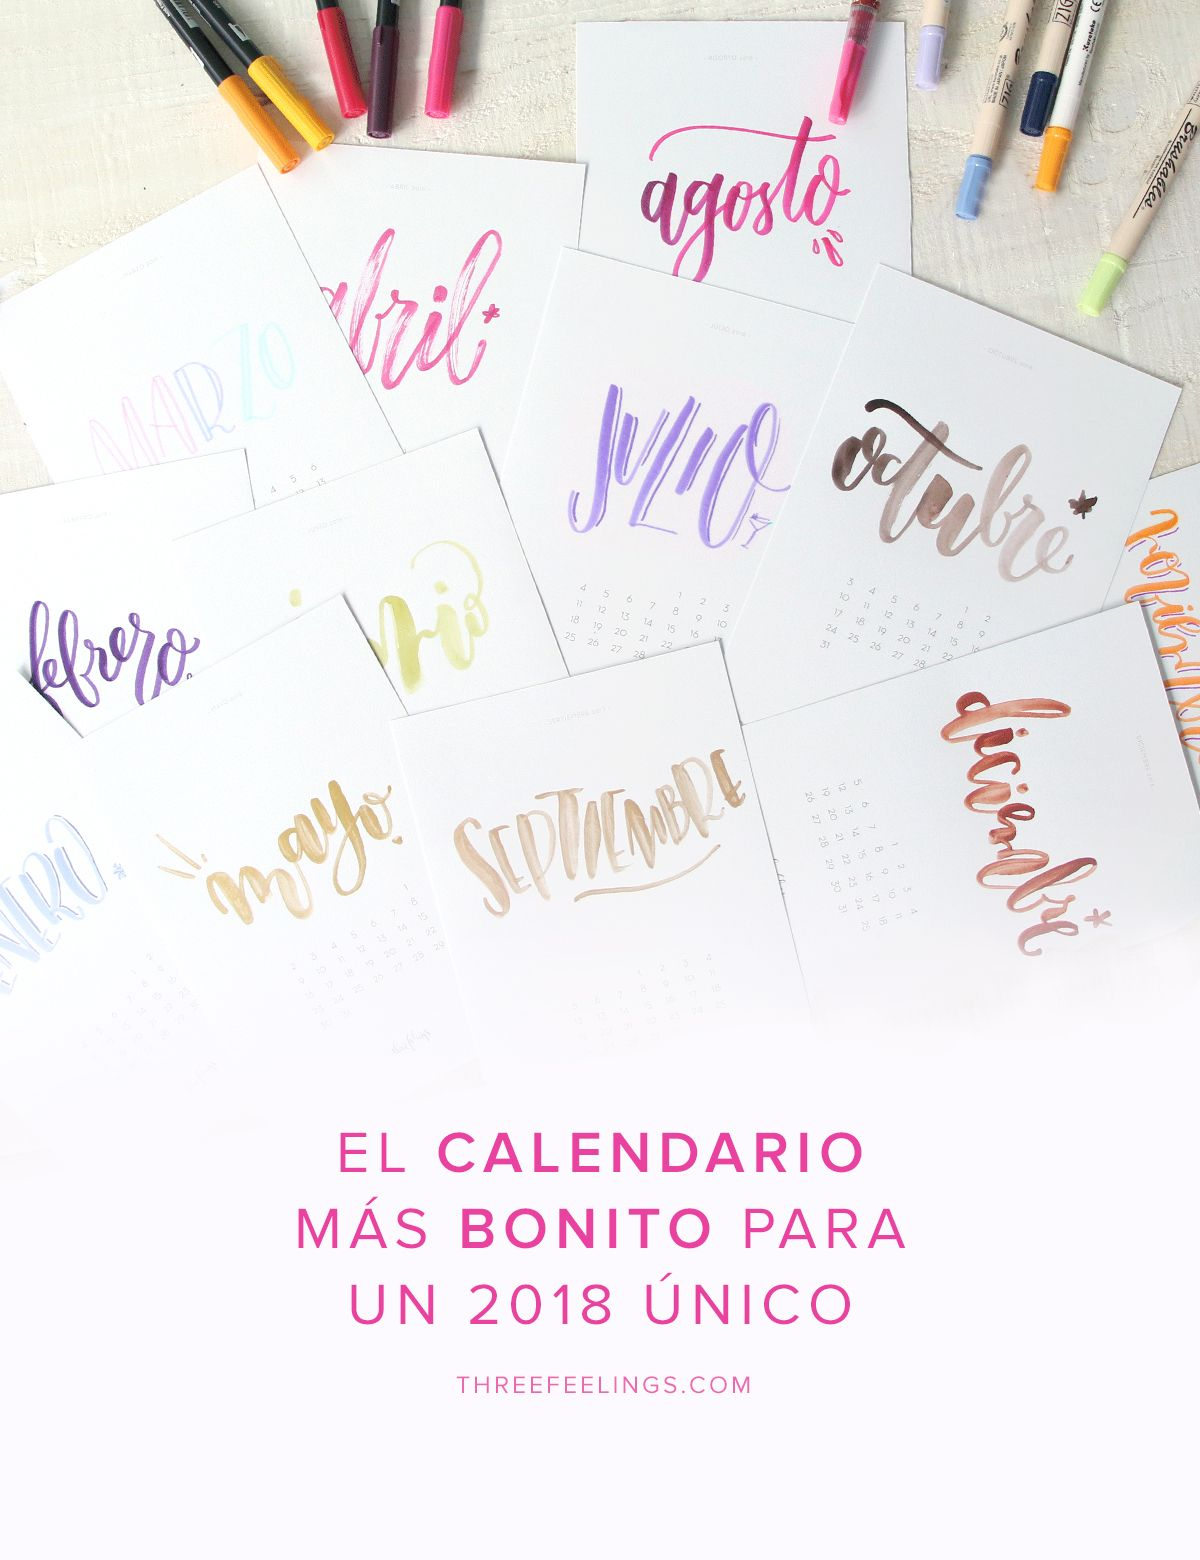 Calendario 2019 Letras Grandes Para Imprimir.Descargable Calendario 2018 Con Lettering Y Mucho Color